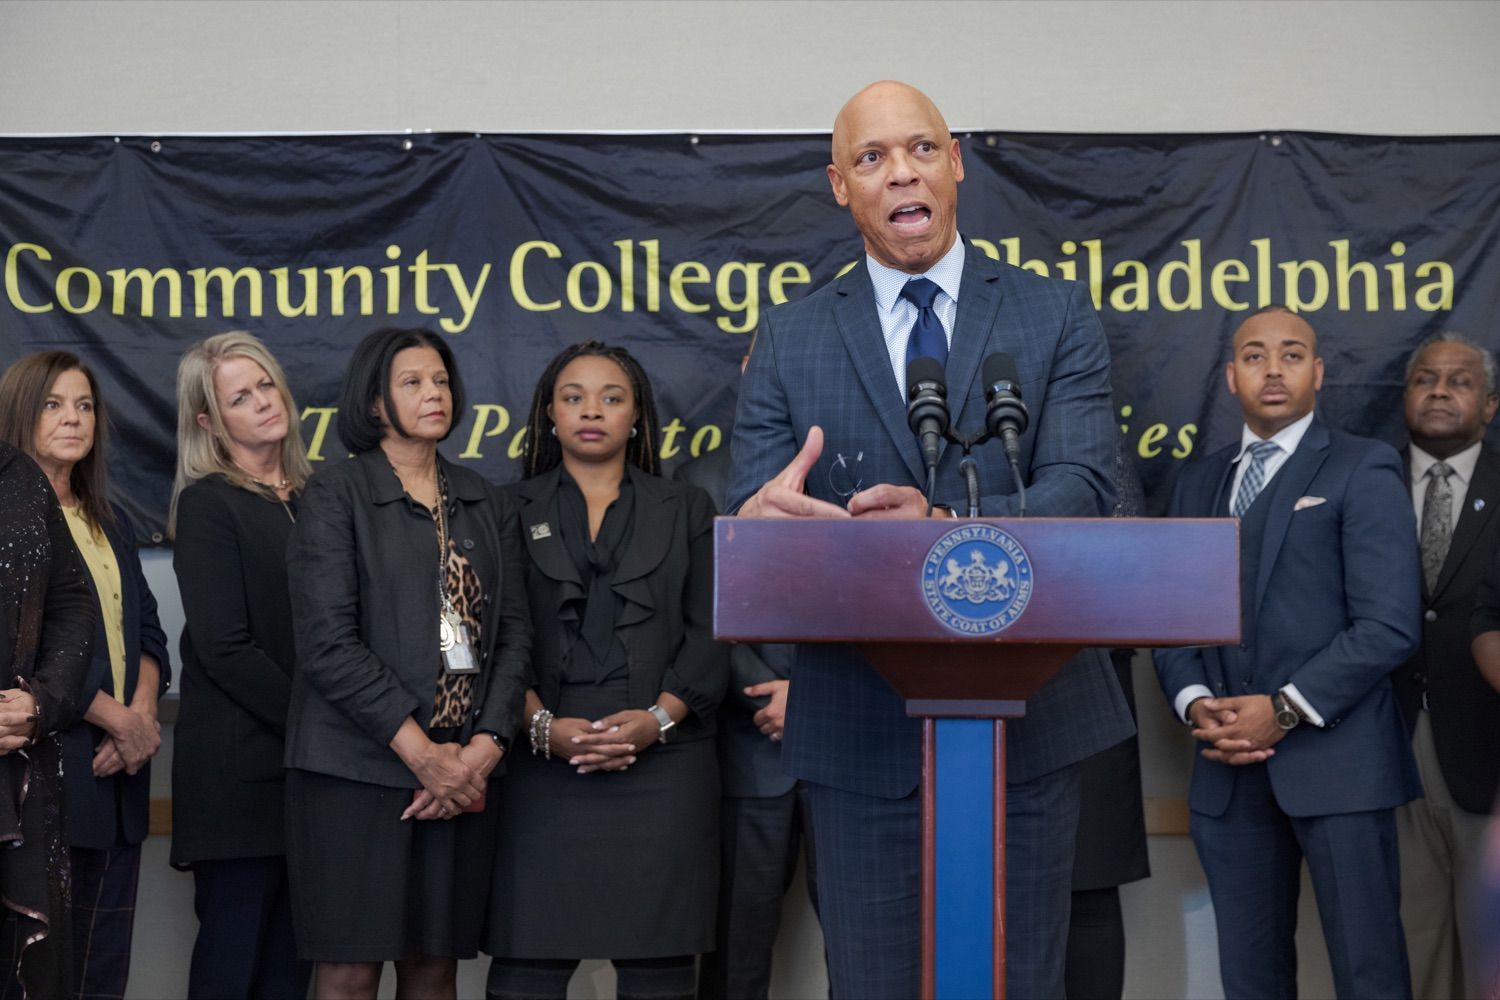 "<a href=""http://filesource.abacast.com/commonwealthofpa/photo/17592_EDU_Aspiring_NK_002.JPG"" target=""_blank"">⇣ Download Photo<br></a>Dr. William Hite, the superintendent of the School District of Philadelphia, speaks during a press conference, announcing the School District of Philadelphia's new pilot program, Aspiring to Educate, that aims to cultivate and diversify the citys educator pool, inside Community College of Philadelphia's Center for Business and Industry on Wednesday, November 20, 2019."